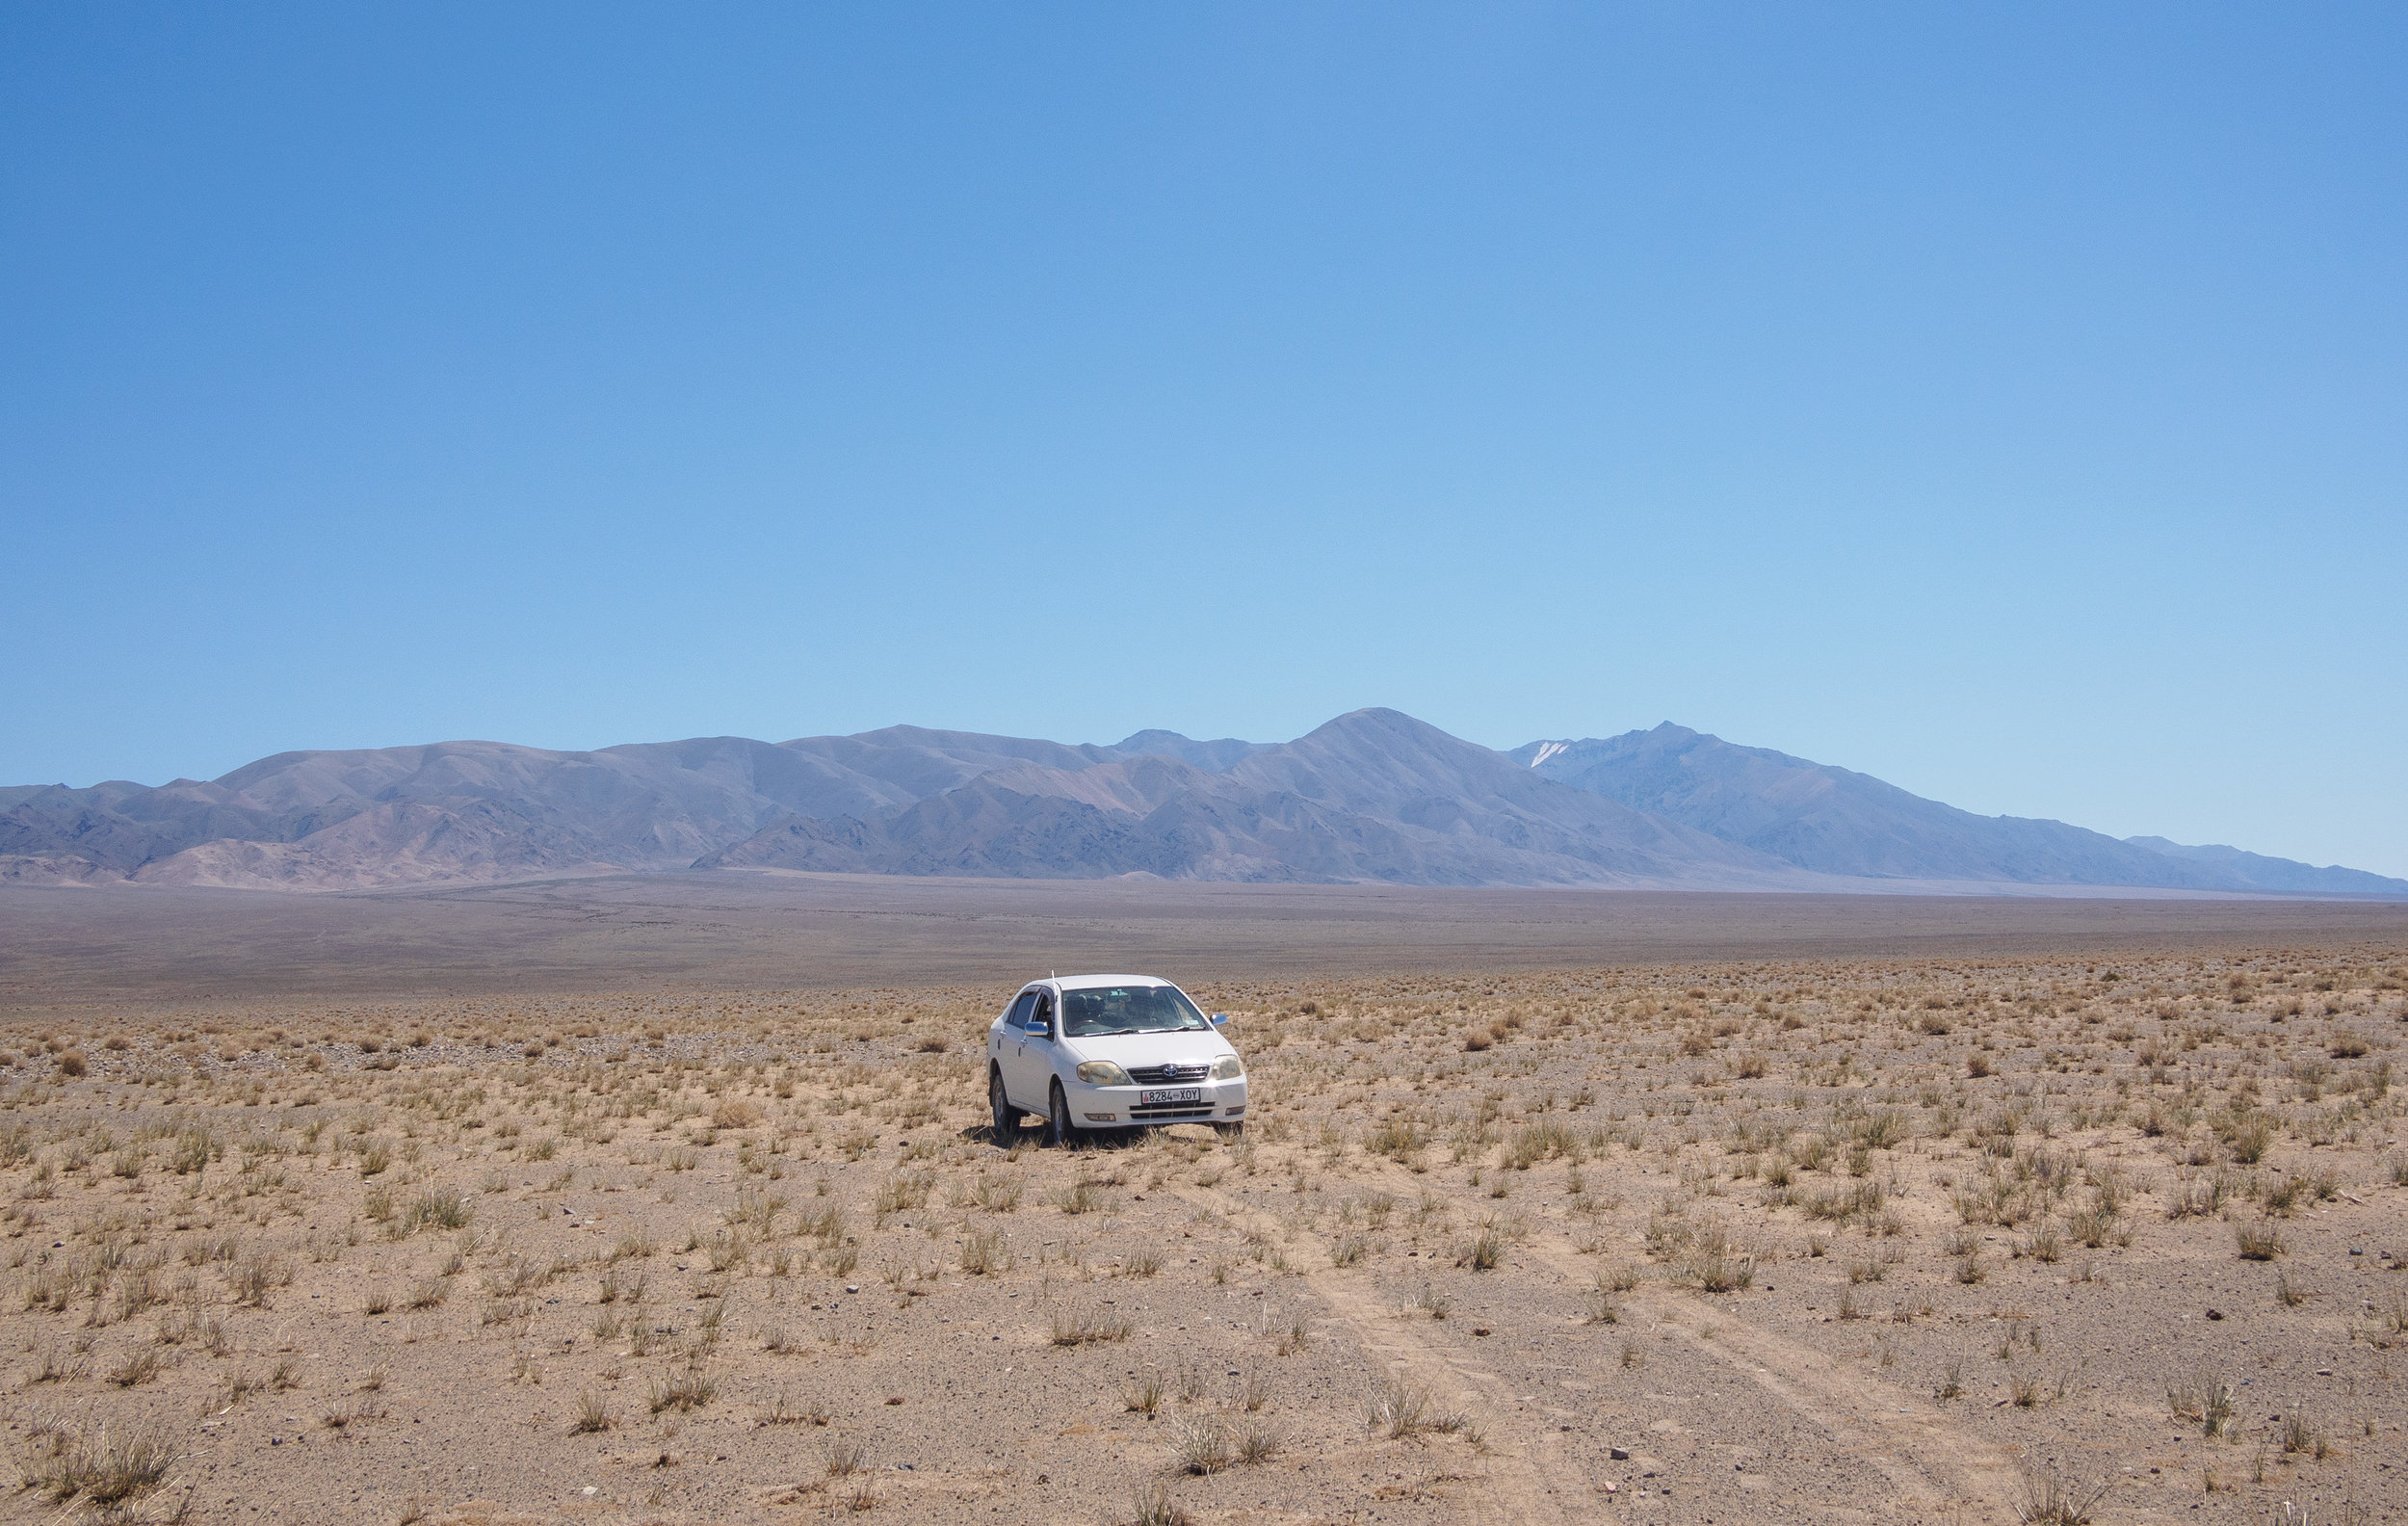 Driving through the deserts of Khovd aimag.